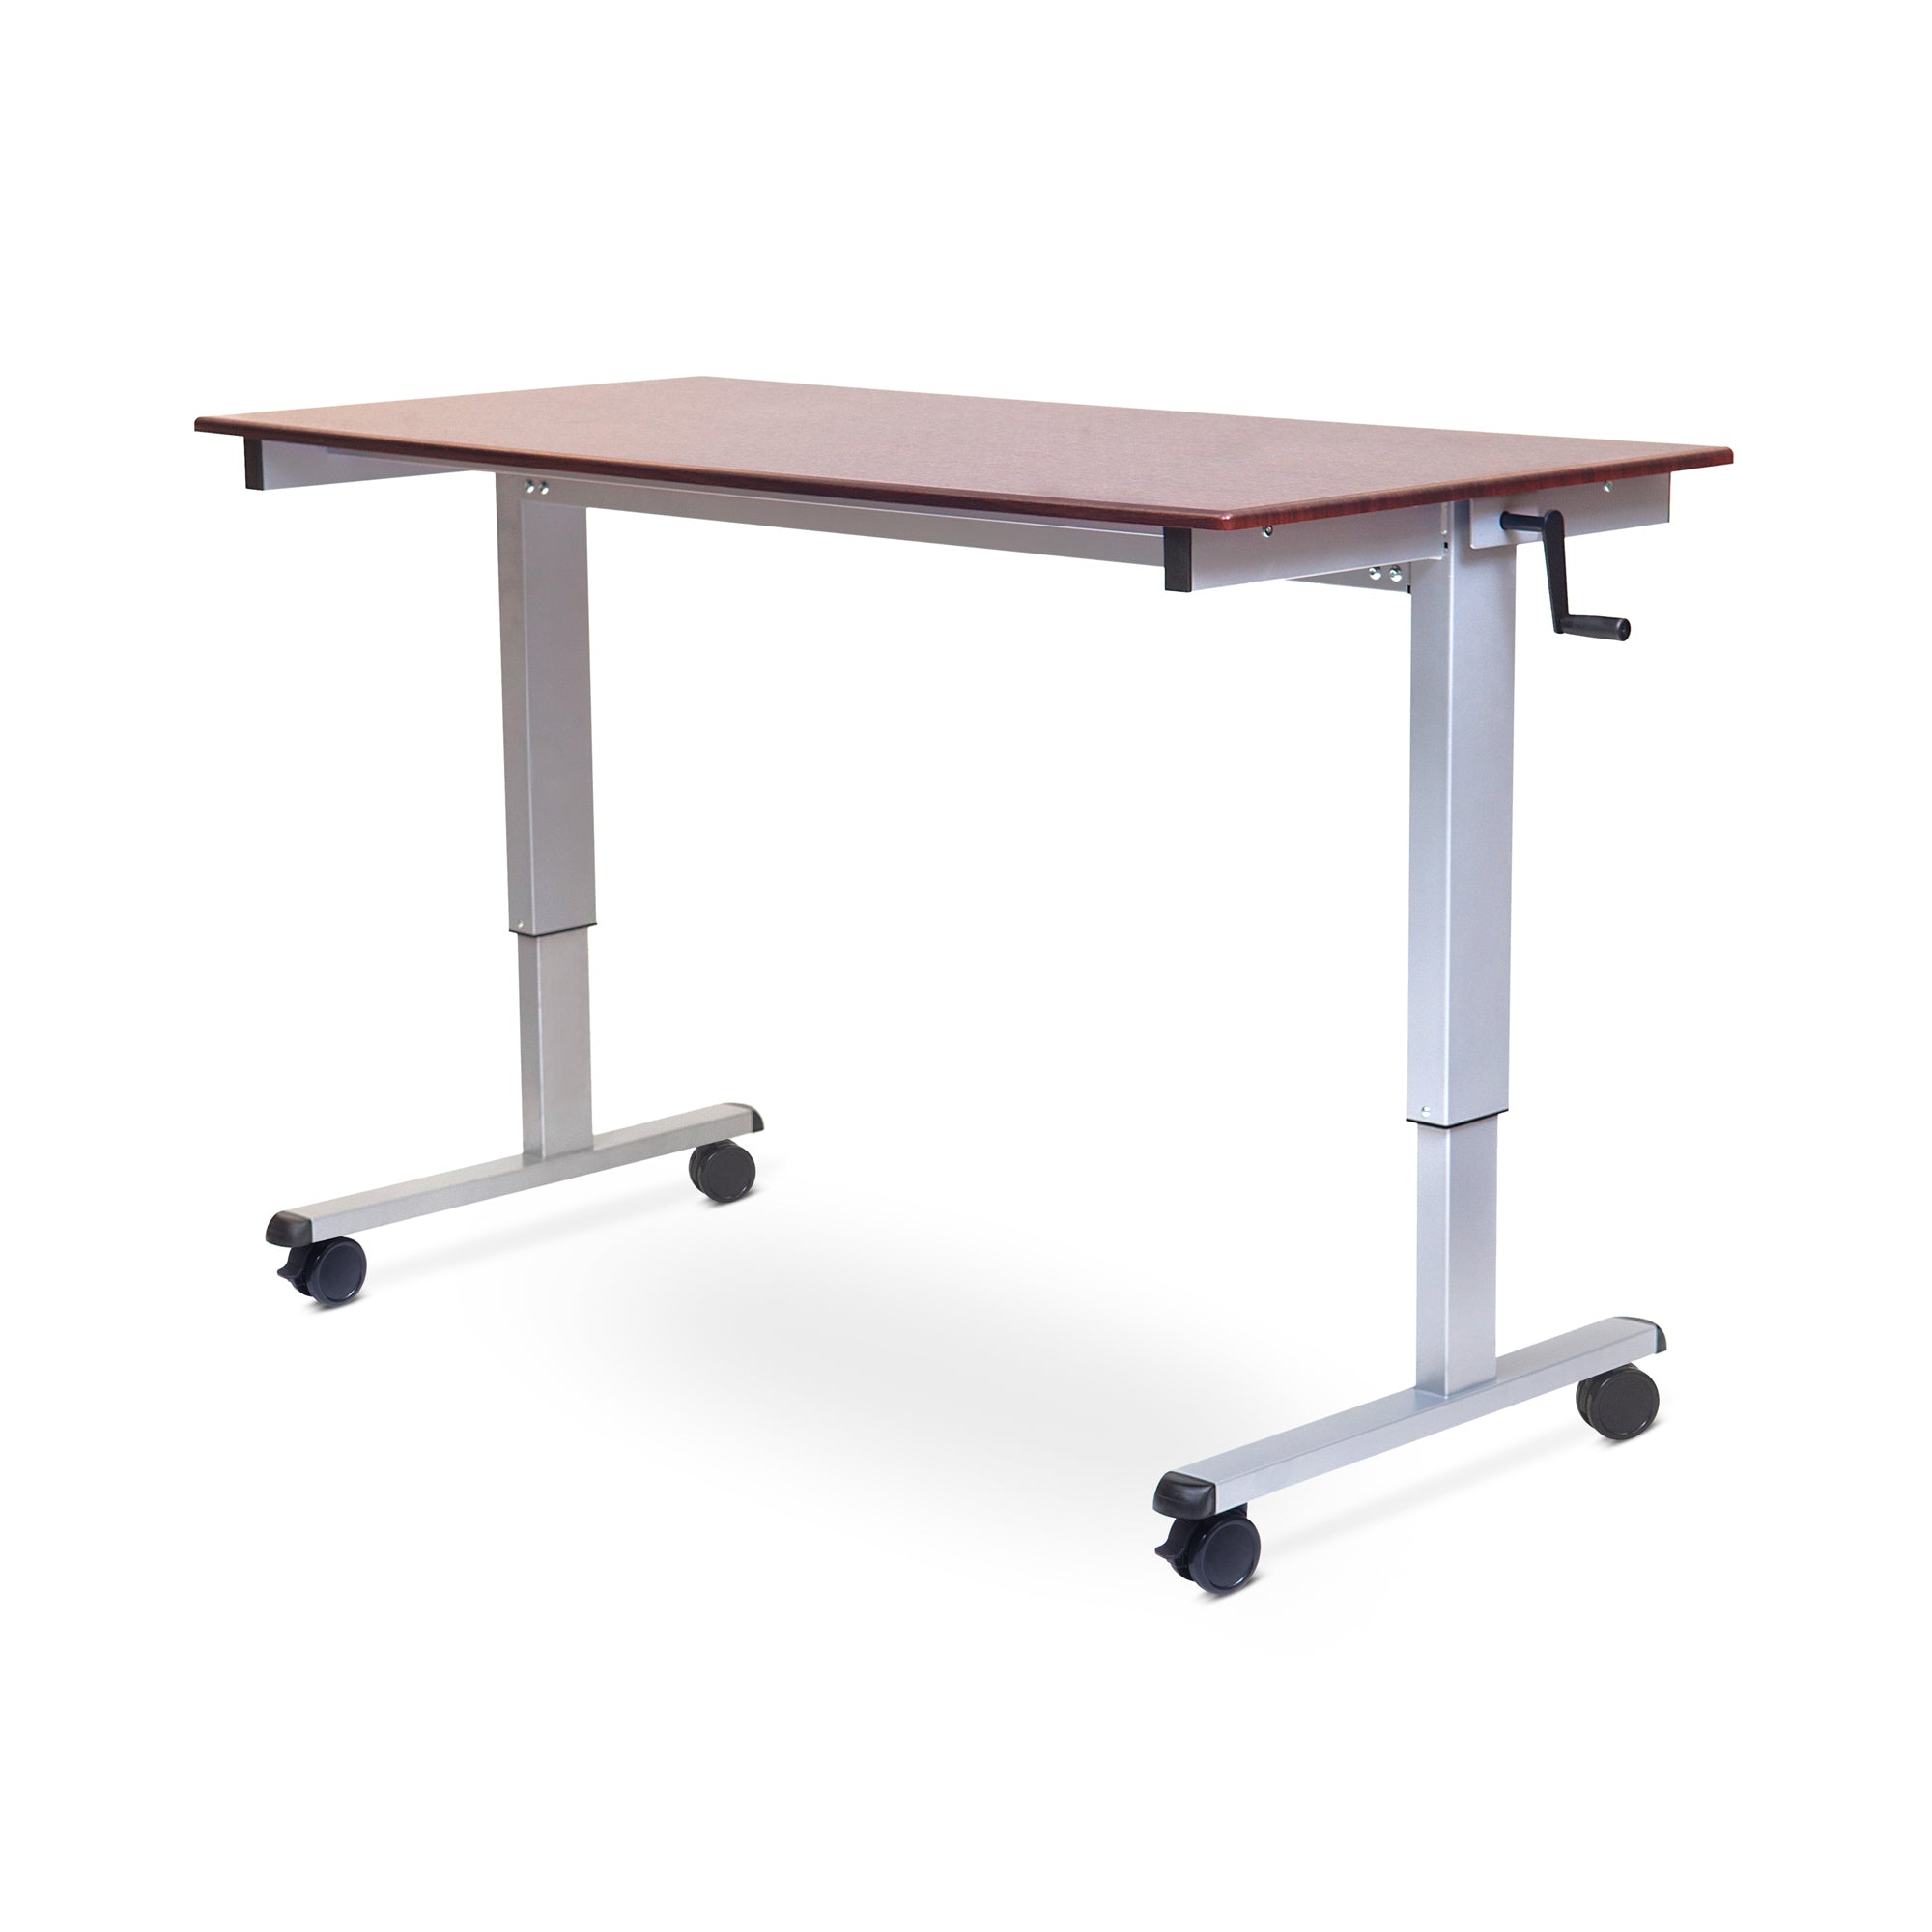 cost of sale size raised for best adjustable rolling full fresh drawers work mobile at top standing platform ergo station furniture stand with extension office vivo workstation table up desk home height